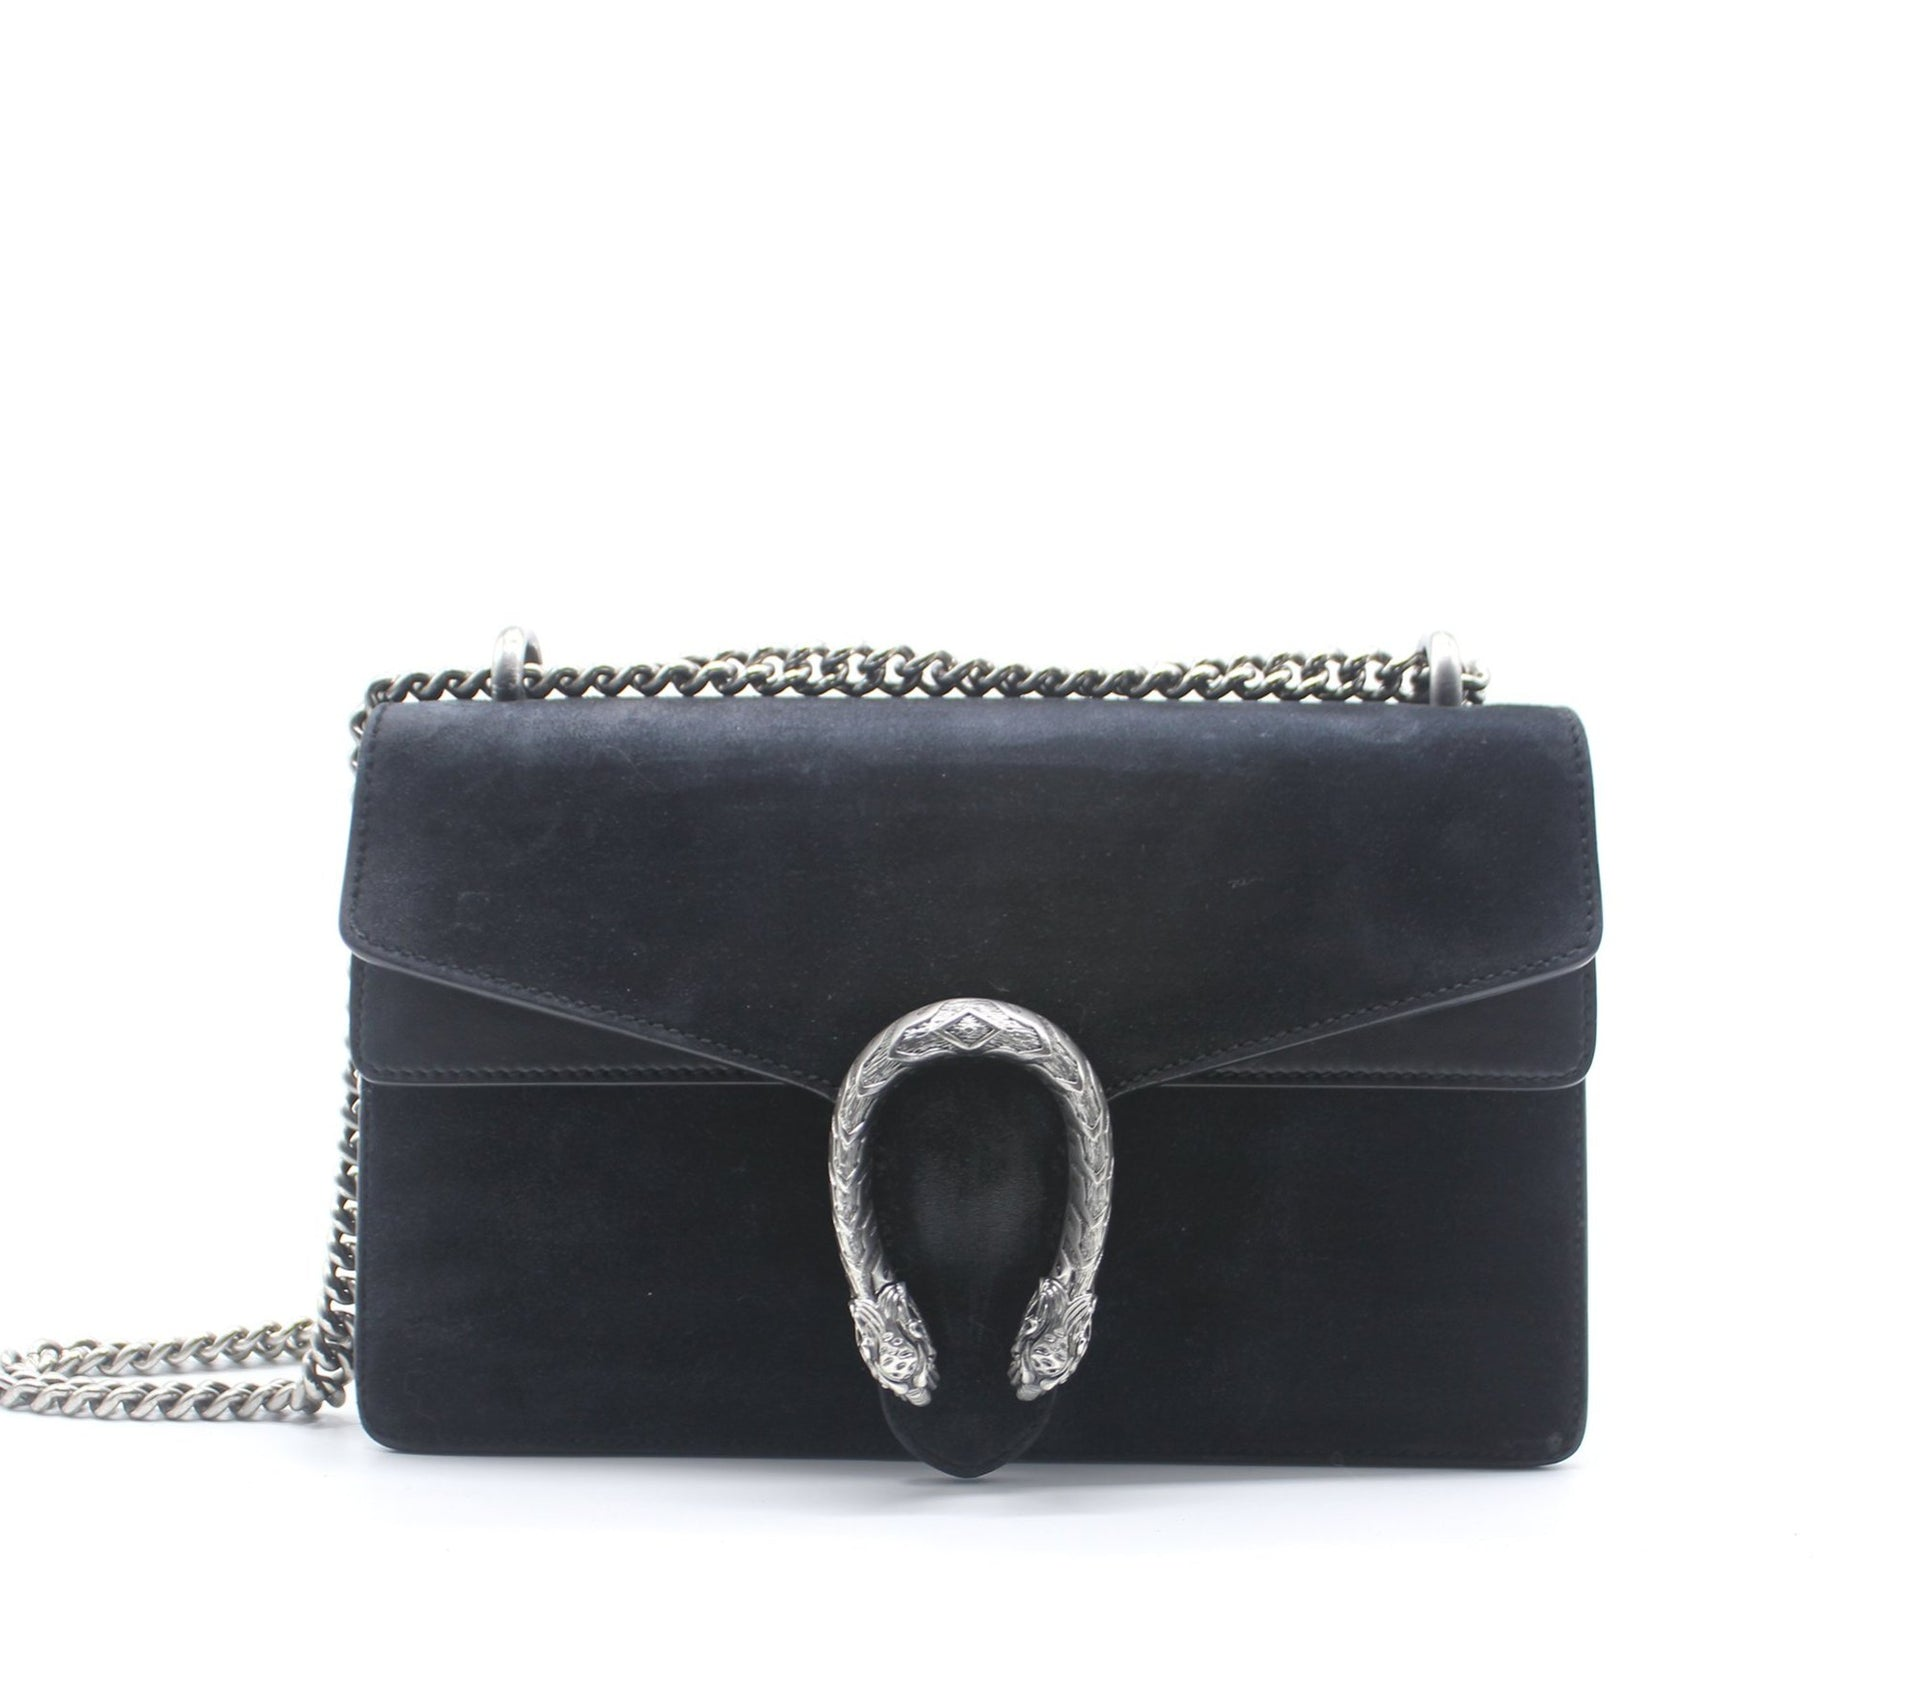 Dionysus Small Suede and Leather Bag